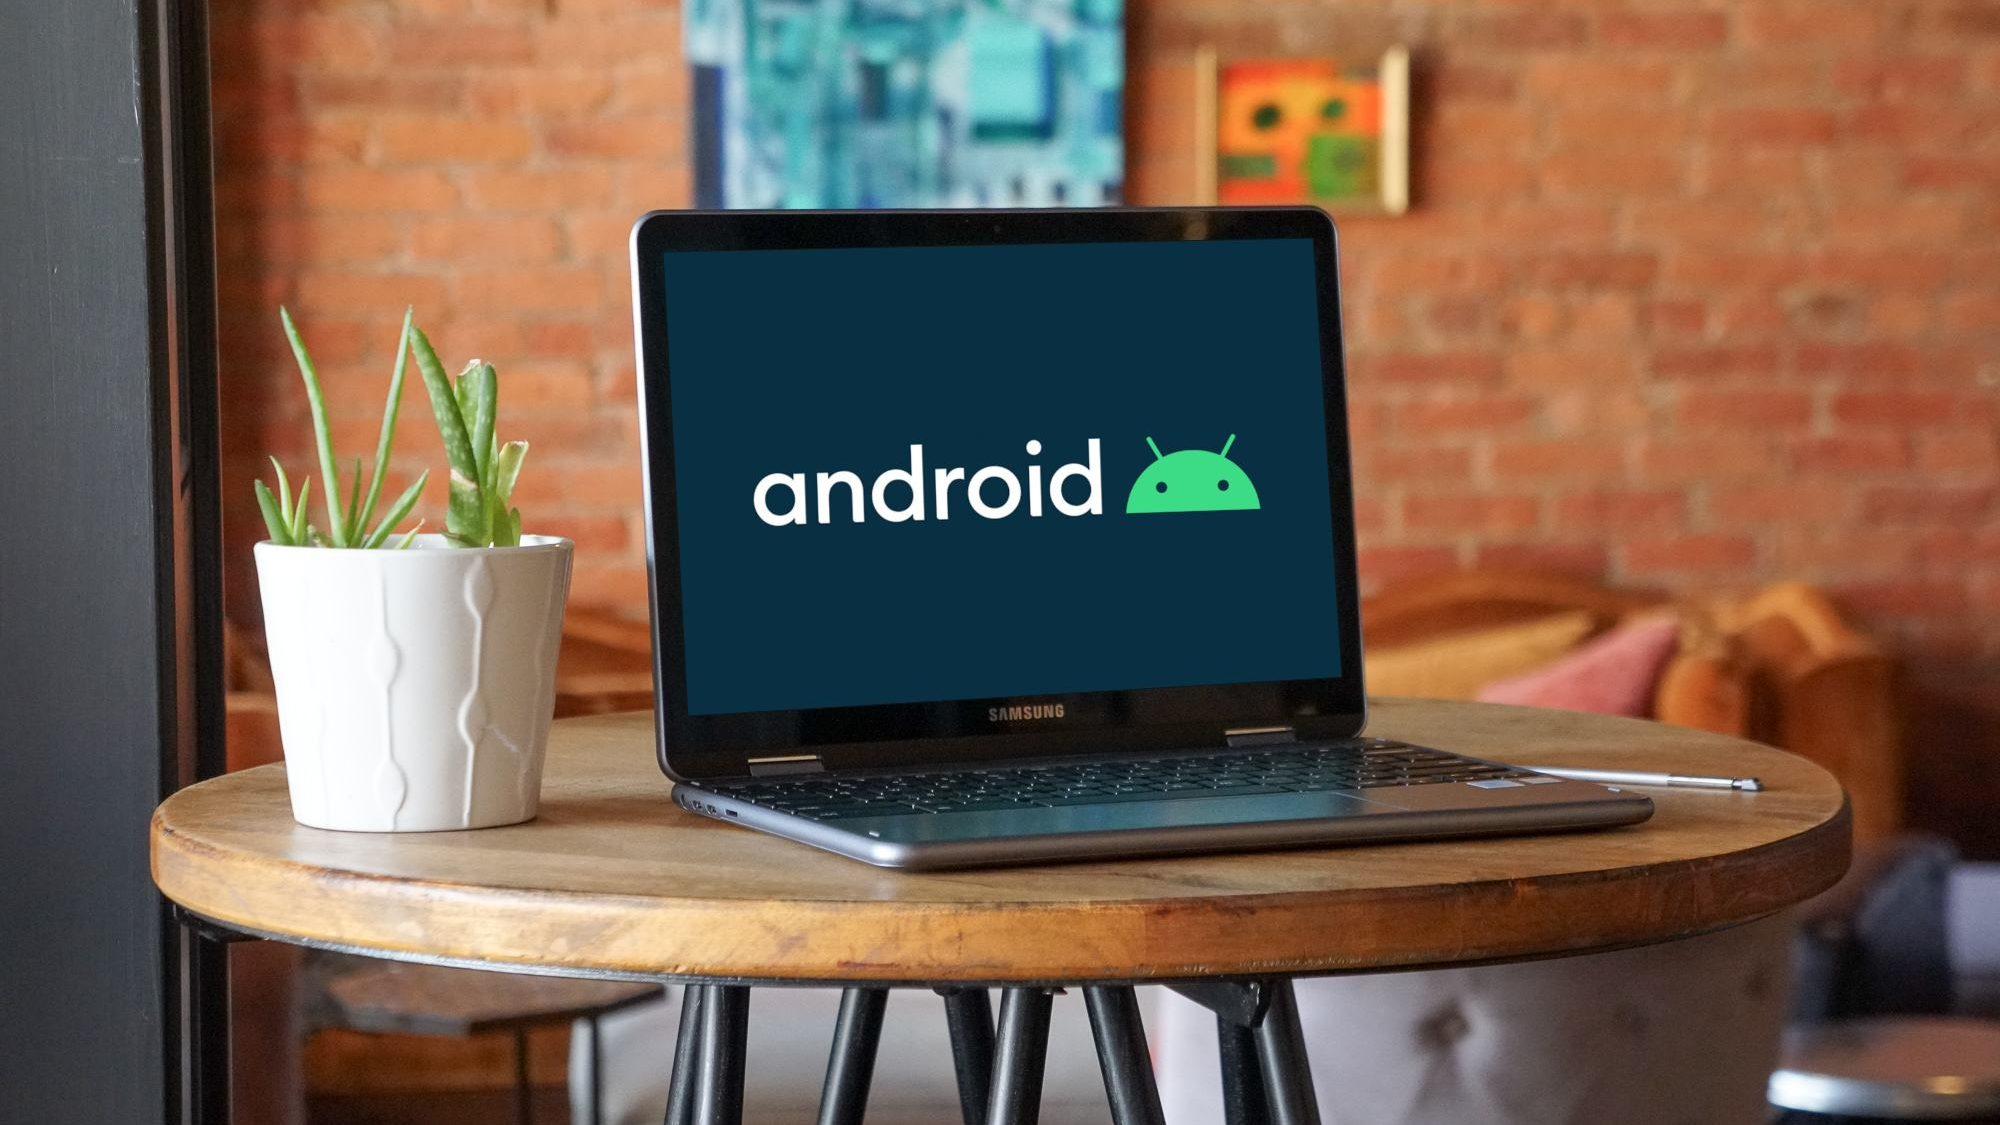 Chromebook sales are booming as Android app usage grows 300%